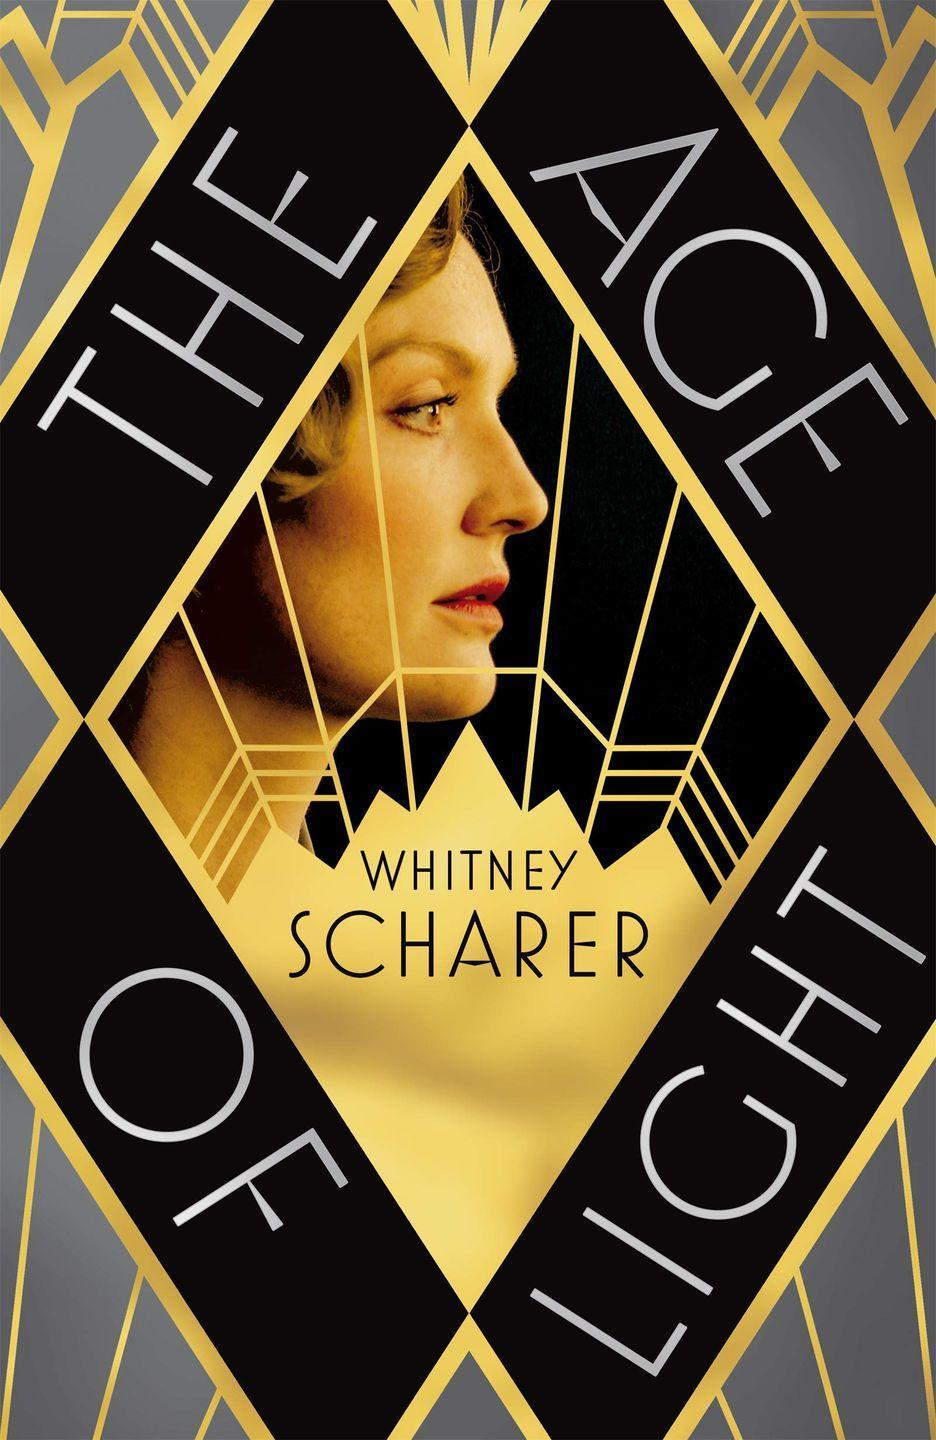 "<p>This historical novel tells the story of icon and artist Lee Miller – famously a muse and lover to Man Ray, she was actually a free-thinking pioneering artist, photographer, model for Vogue, Conde Nast's first war correspondent in WWII (she took a <a href=""https://www.telegraph.co.uk/content/dam/photography/2016/12/02/XU6205940_79-19R6-2814846b_trans_NvBQzQNjv4BqpJliwavx4coWFCaEkEsb3kvxIt-lGGWCWqwLa_RXJU8.jpg?imwidth=450"" rel=""nofollow noopener"" target=""_blank"" data-ylk=""slk:bath in Hitler's tub"" class=""link rapid-noclick-resp"">bath in Hitler's tub</a>), and more. This novel shows how she transcended the male-accessory role and casts her in a new light as the protagonist of her own independent, ambitious life. Fans of <em>Mrs Hemingway</em> and <em>The Paris Wife</em> will love this one. </p><p><em>Out in February </em></p><p><em><a href=""https://www.amazon.co.uk/Age-Light-Whitney-Scharer/dp/1509889132/ref=sr_1_1?ie=UTF8&qid=1545305898&sr=8-1&keywords=the+age+of+light+by+whitney+scharer"" rel=""nofollow noopener"" target=""_blank"" data-ylk=""slk:PRE-ORDER"" class=""link rapid-noclick-resp"">PRE-ORDER</a><br></em></p>"